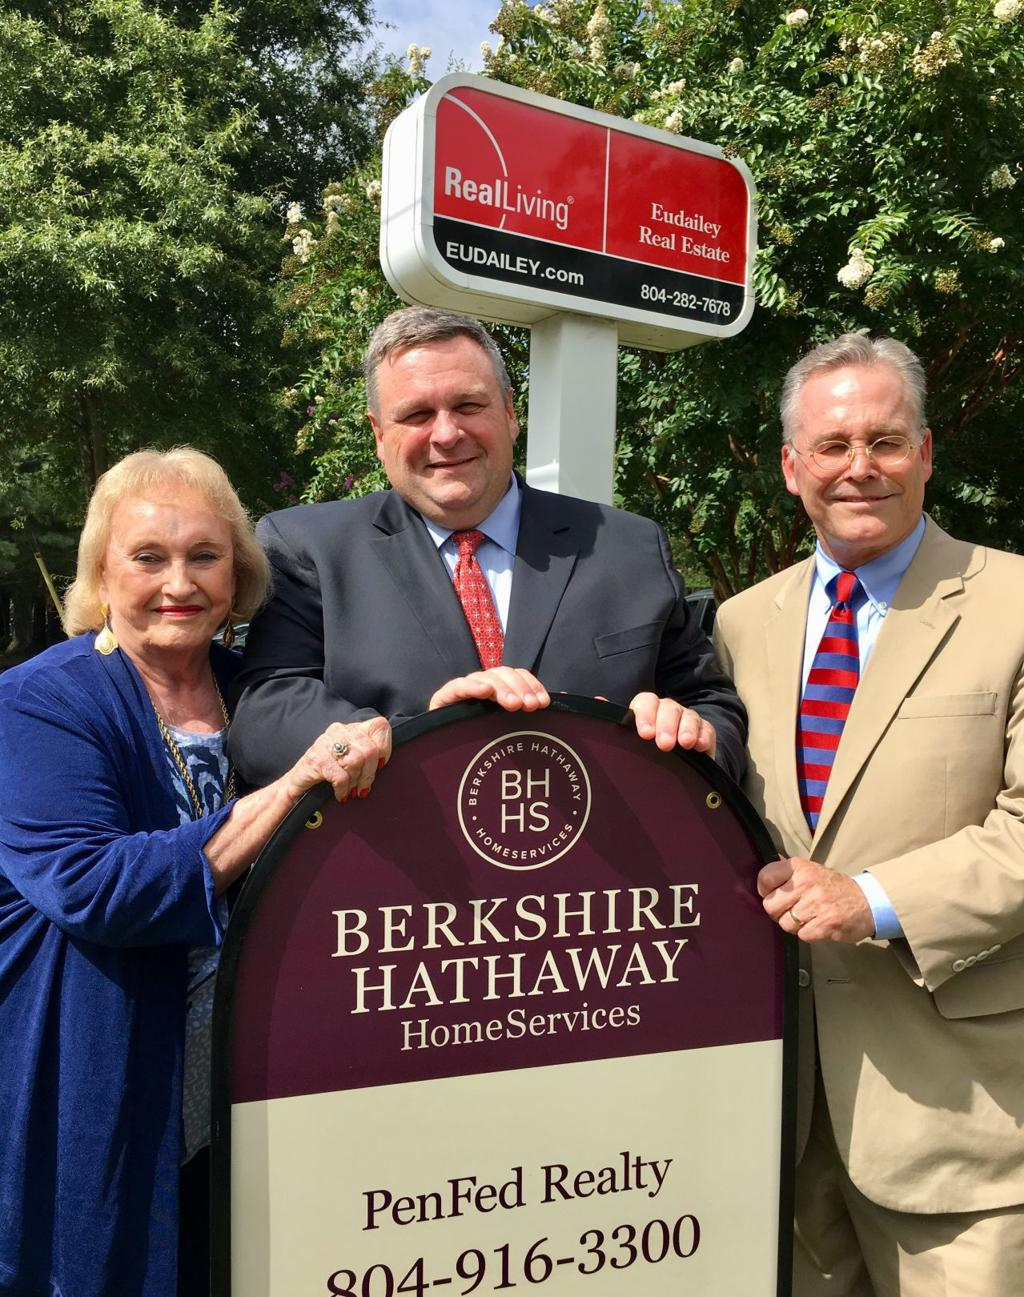 Berkshire Hathaway Homeservices Penfed Realty Buys Henrico Brokerage Business News Richmond Com